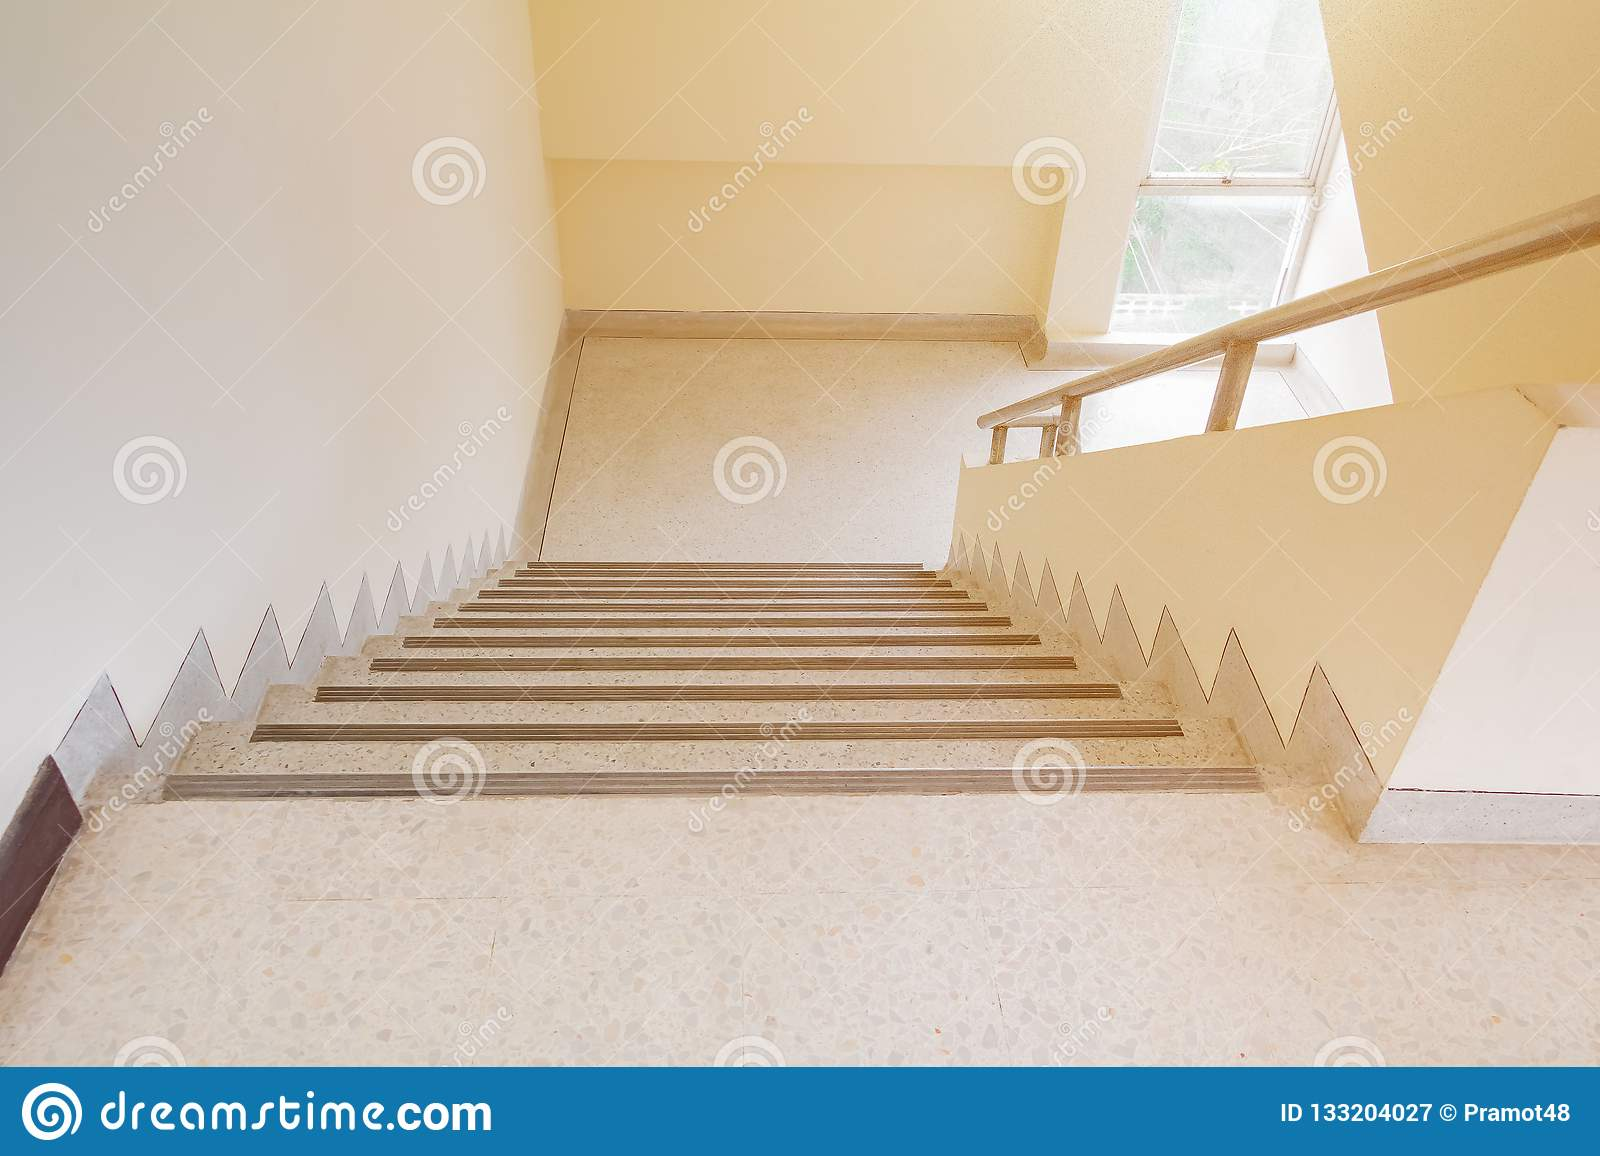 Stairs Terrazzo Floor Walkway Up Down Interior Building